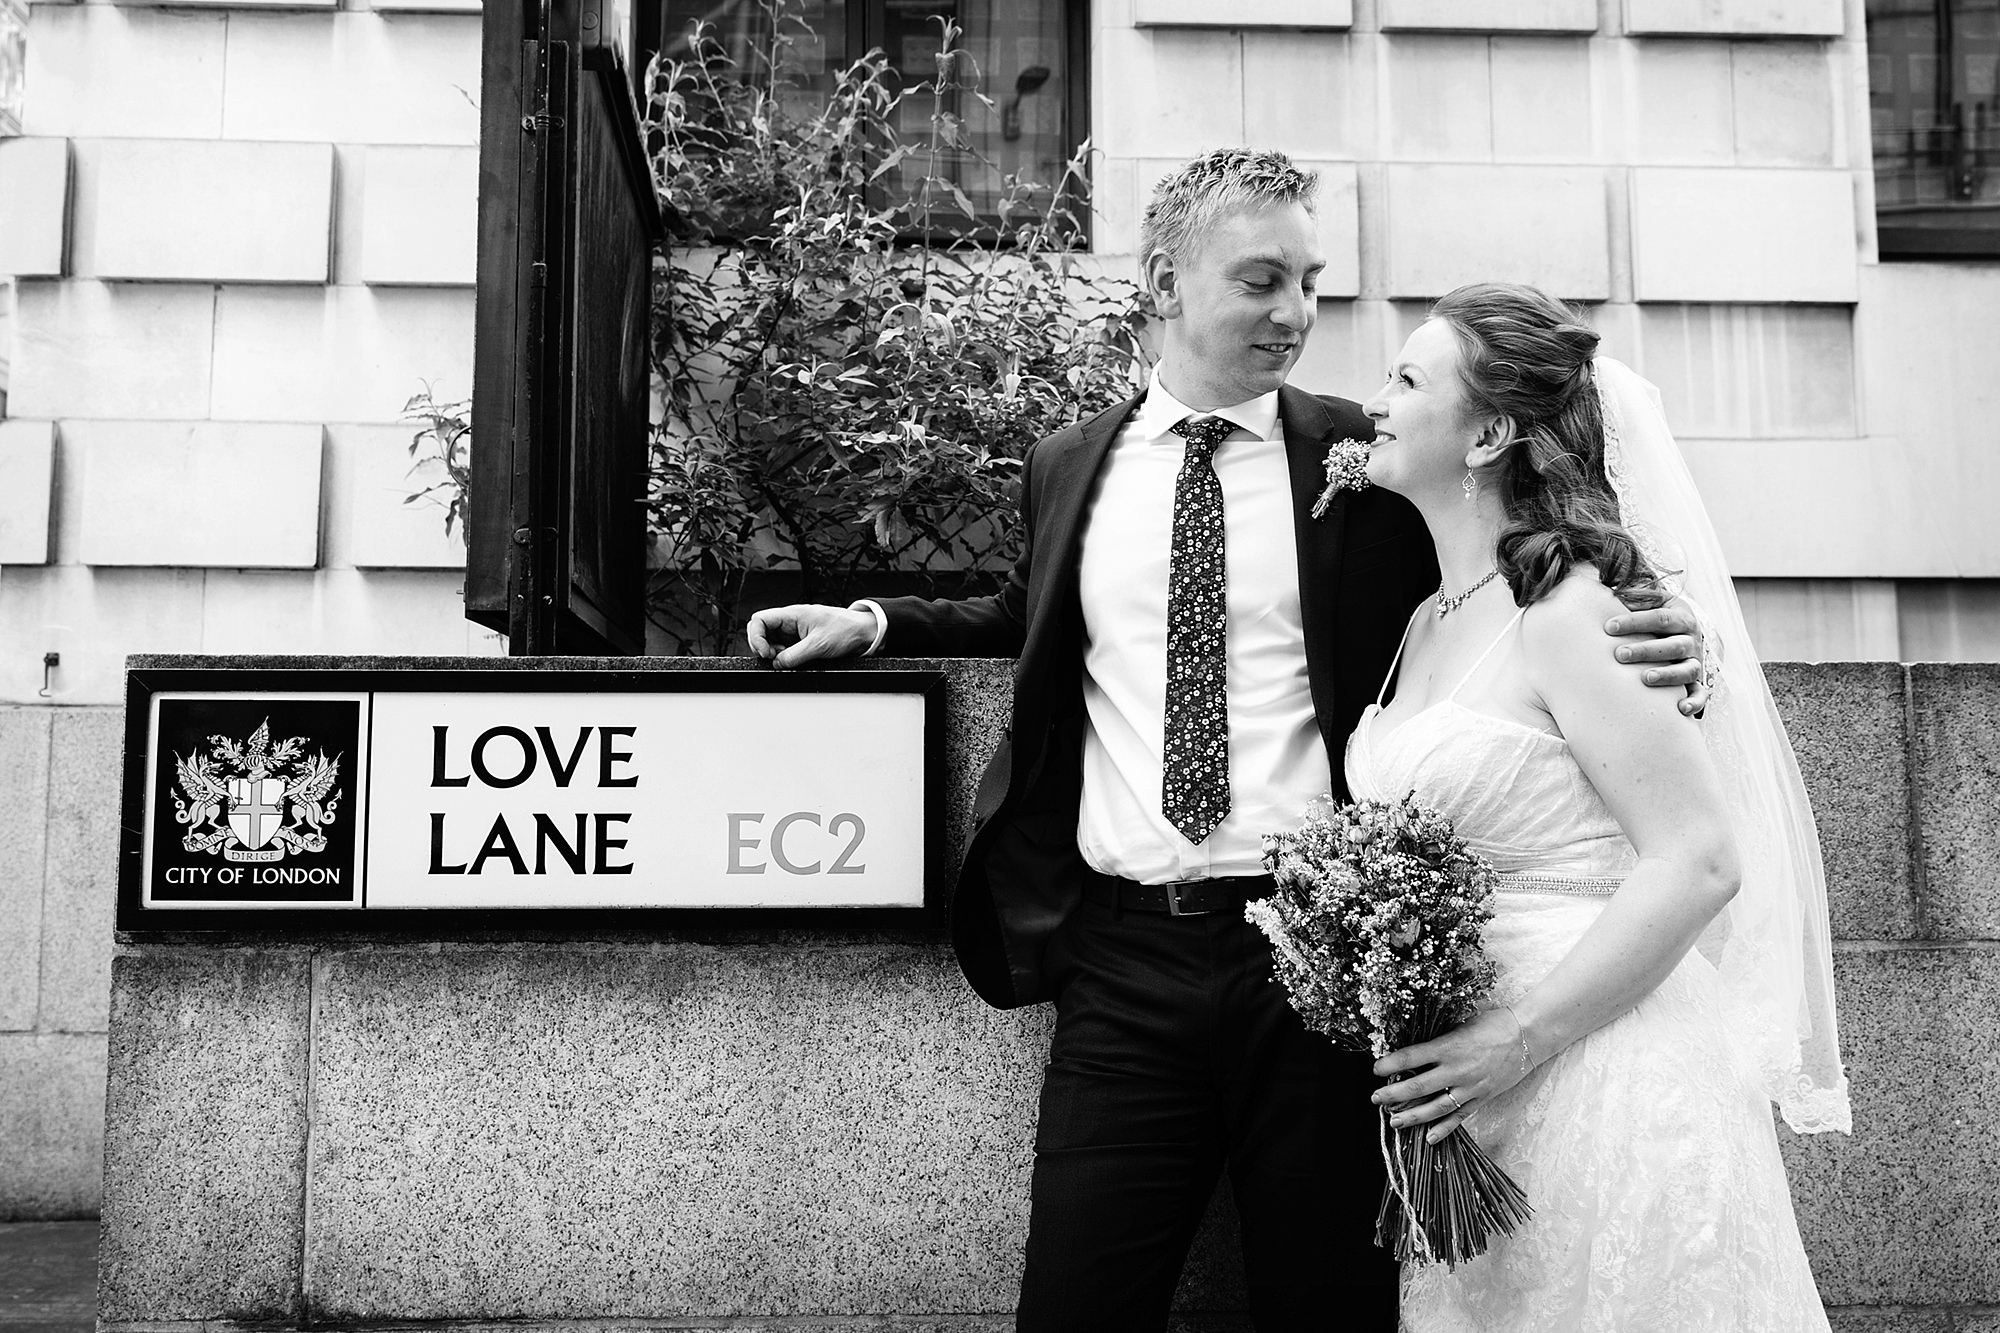 oyster shed wedding bride and groom laugh together by love lane sign